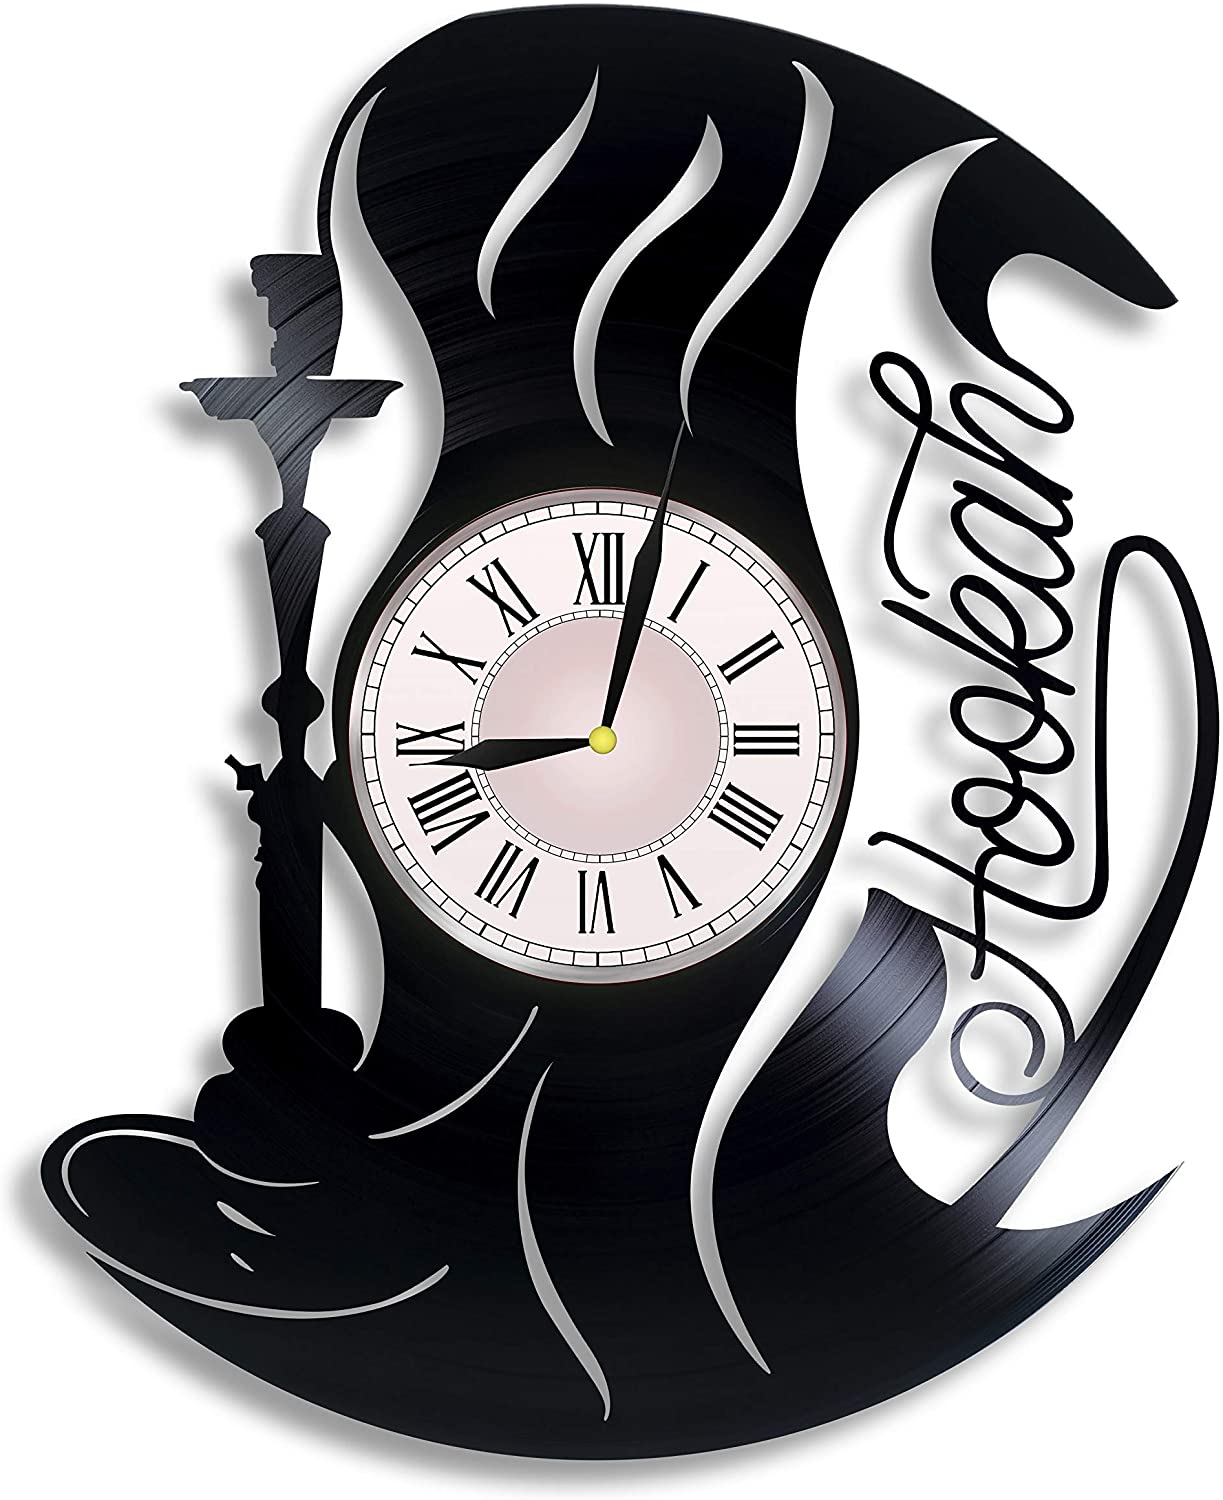 Hookah Lovers Vinyl Wall Clock, Hookah Lovers Gift for Any Occasion